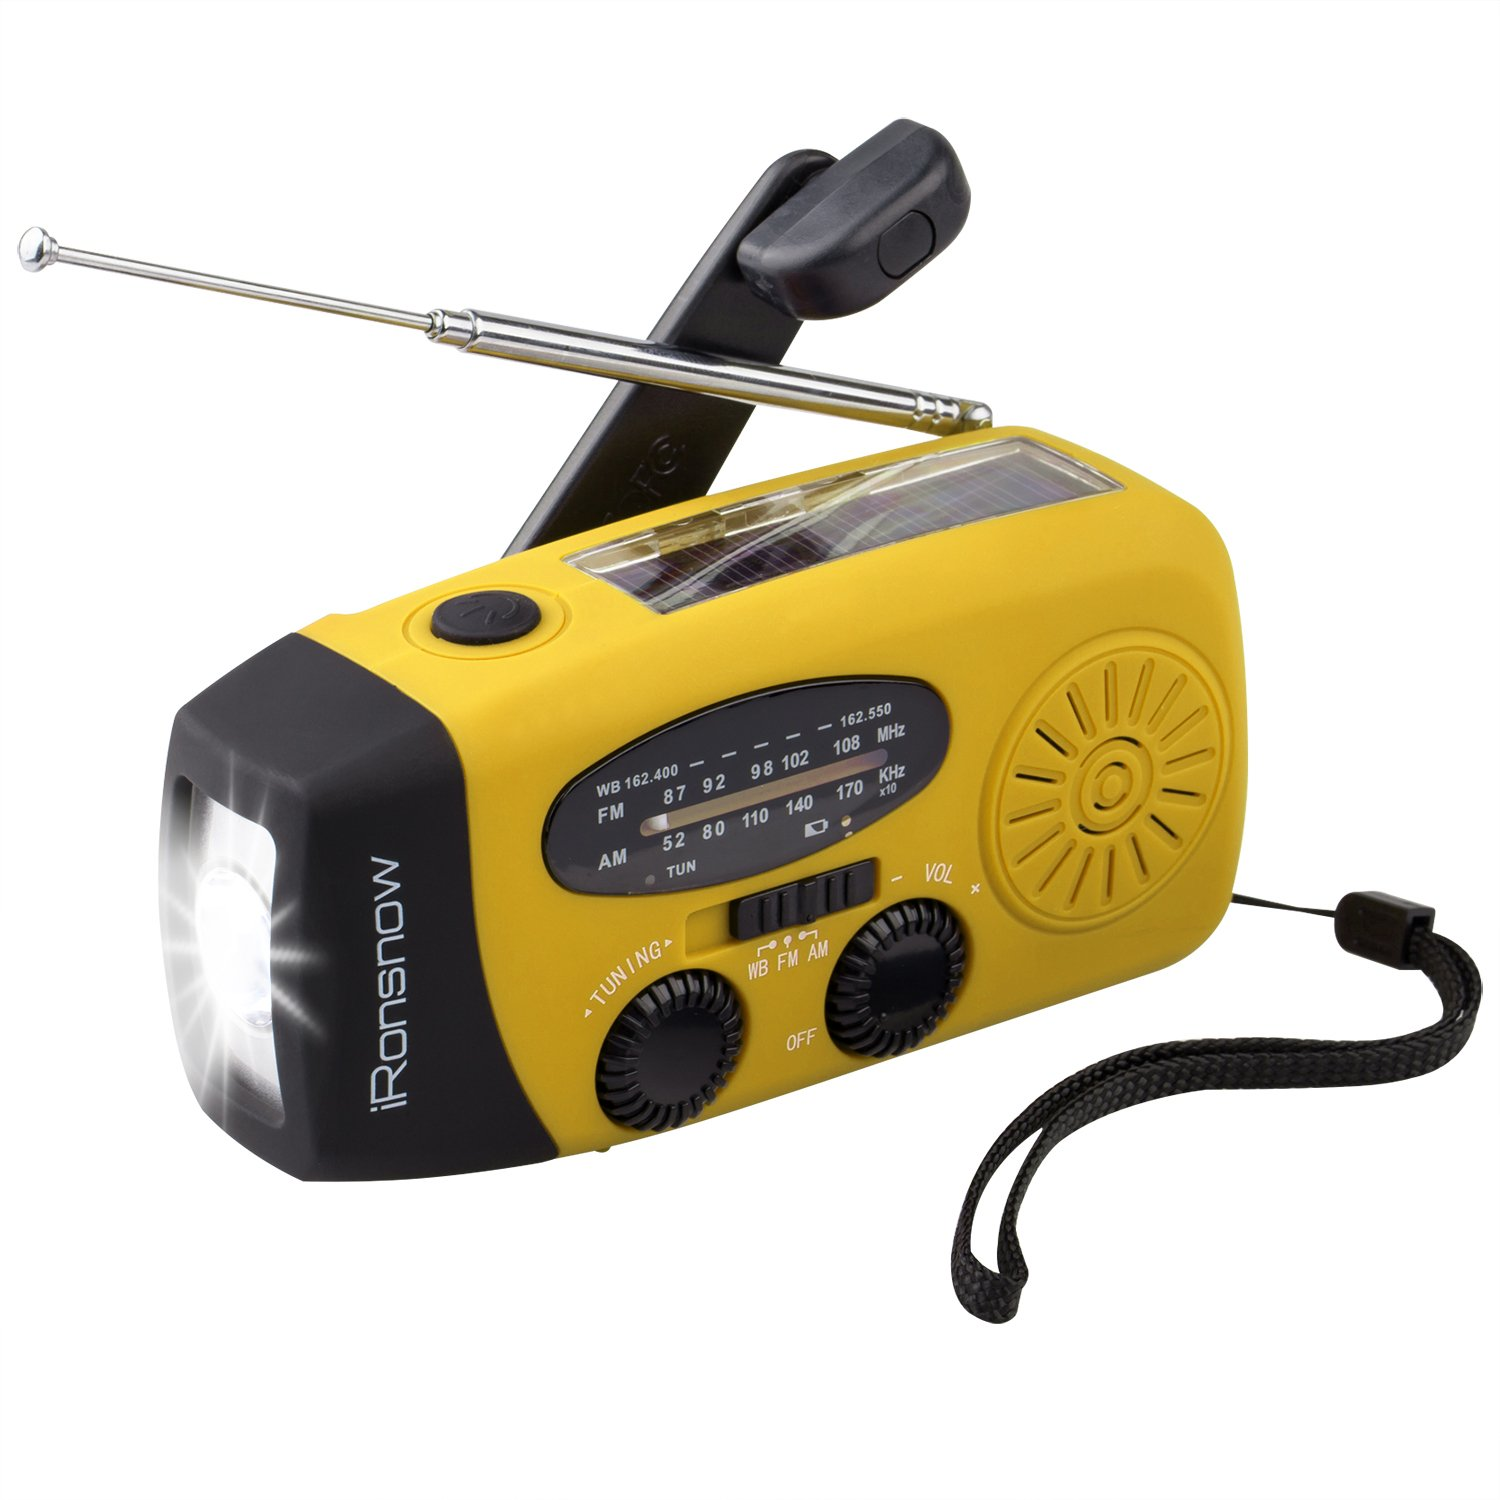 iRonsnow 2017 Version IS-088U+ Dynamo Solar Hand Crank Self Powered AM/FM/NOAA Weather Radio with LED Flashlight and 1000mAh Emergency Power Bank (Yellow)